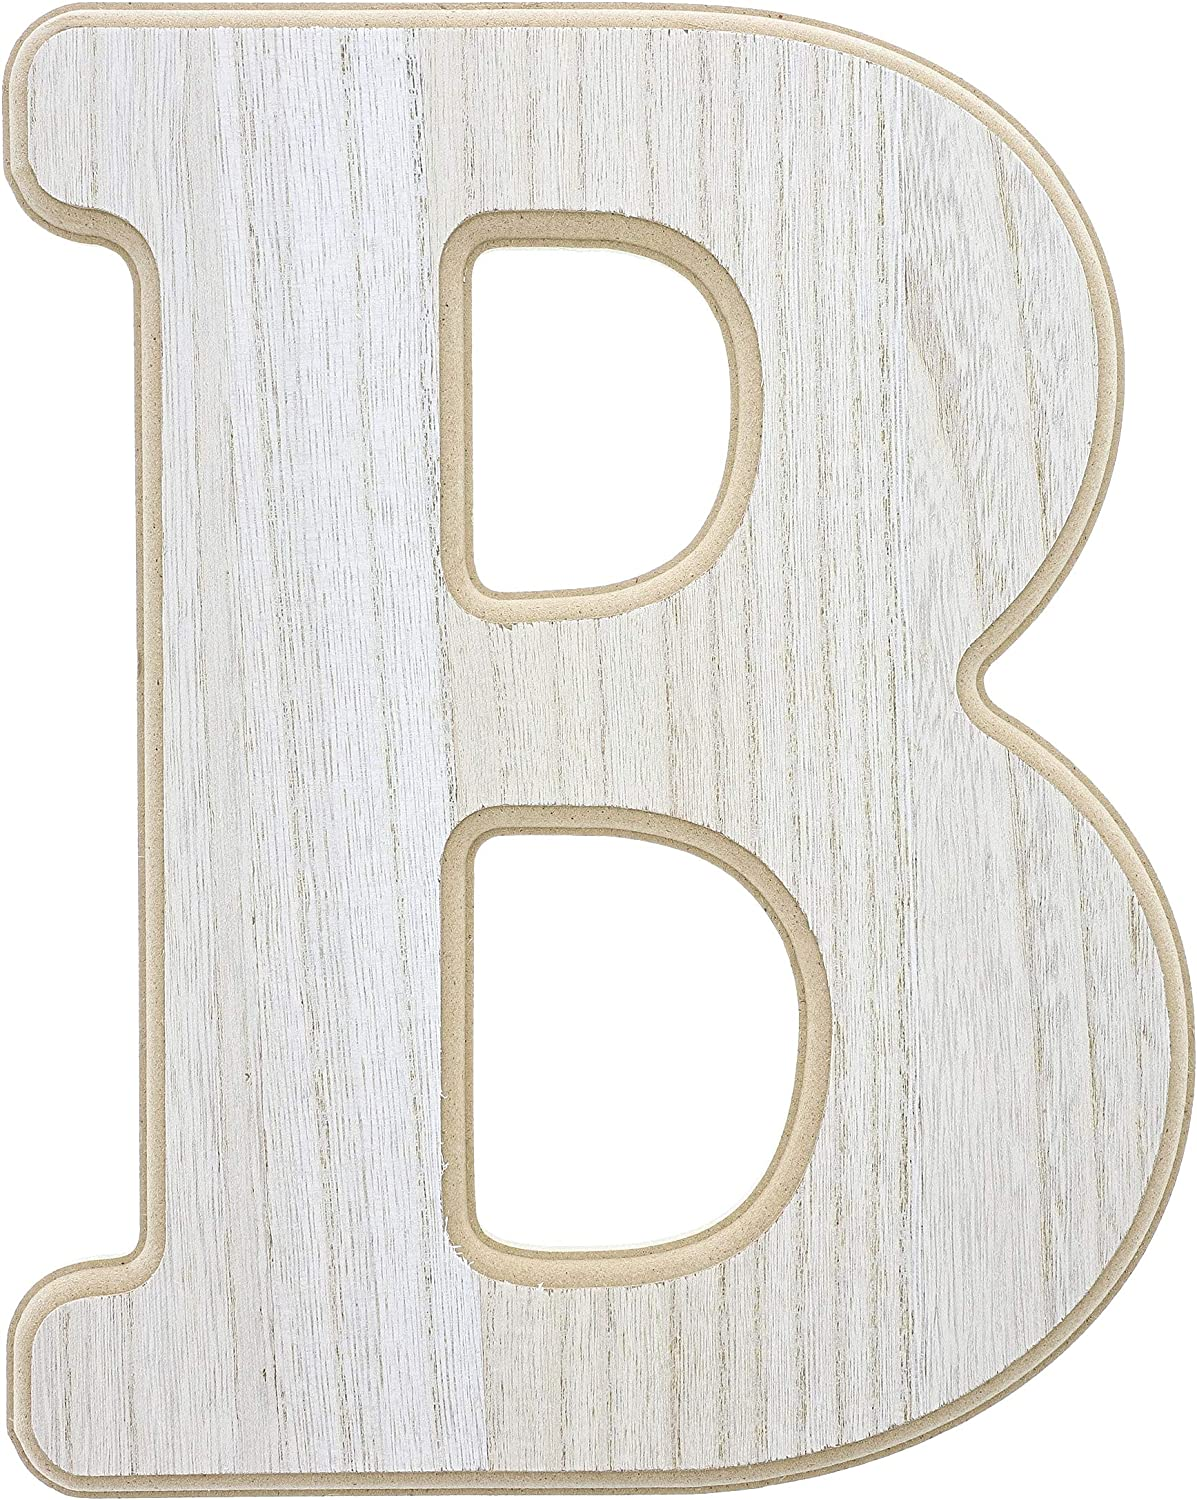 Unfinished Wooden Letter R 6 Inches